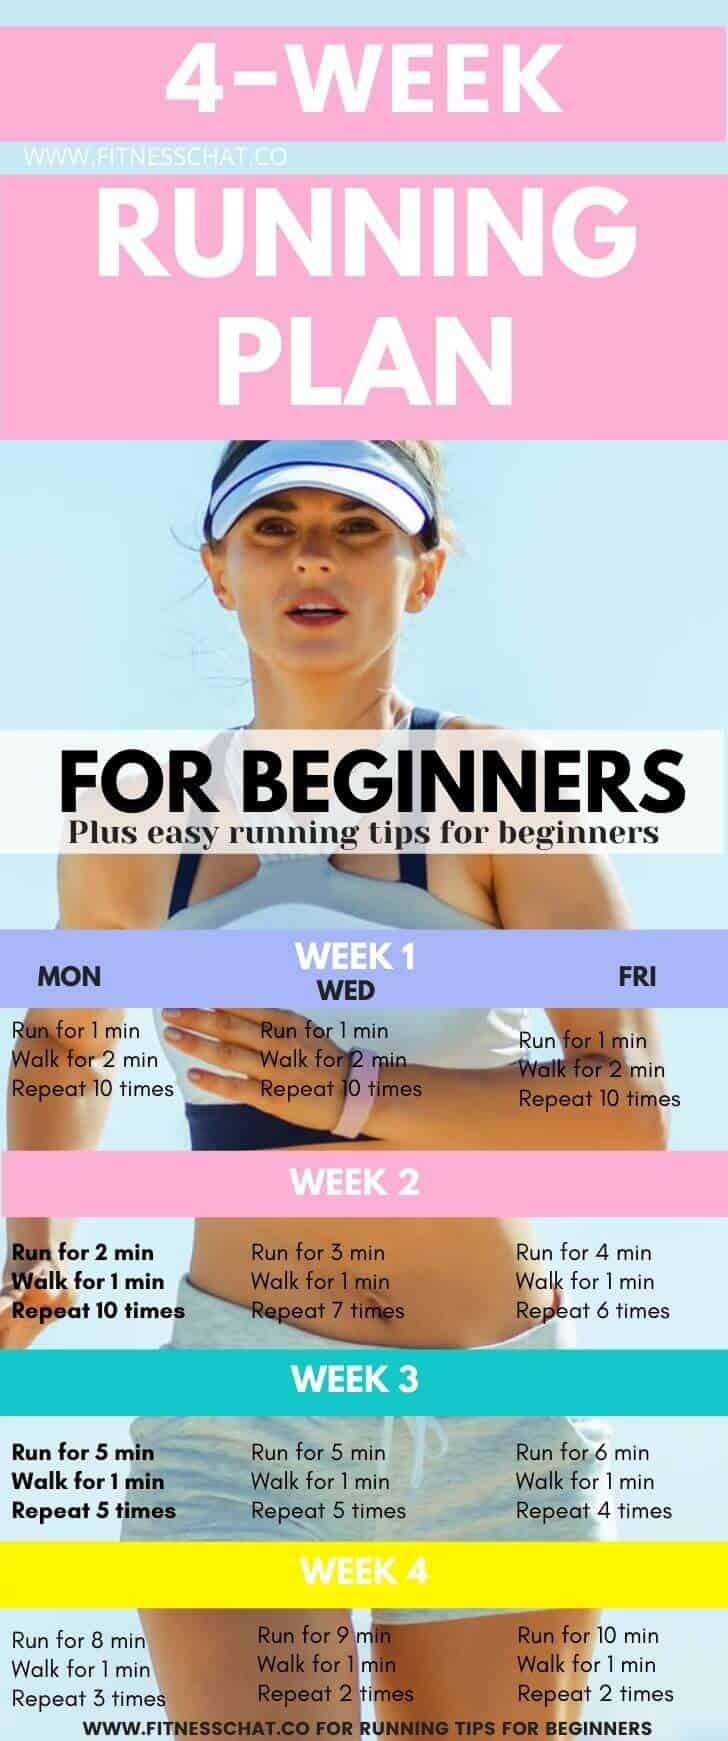 Discover How to start running for beginners to lose weight. 4 week running plan for beginners plus 8 easy running tips  and running schedule for beginners